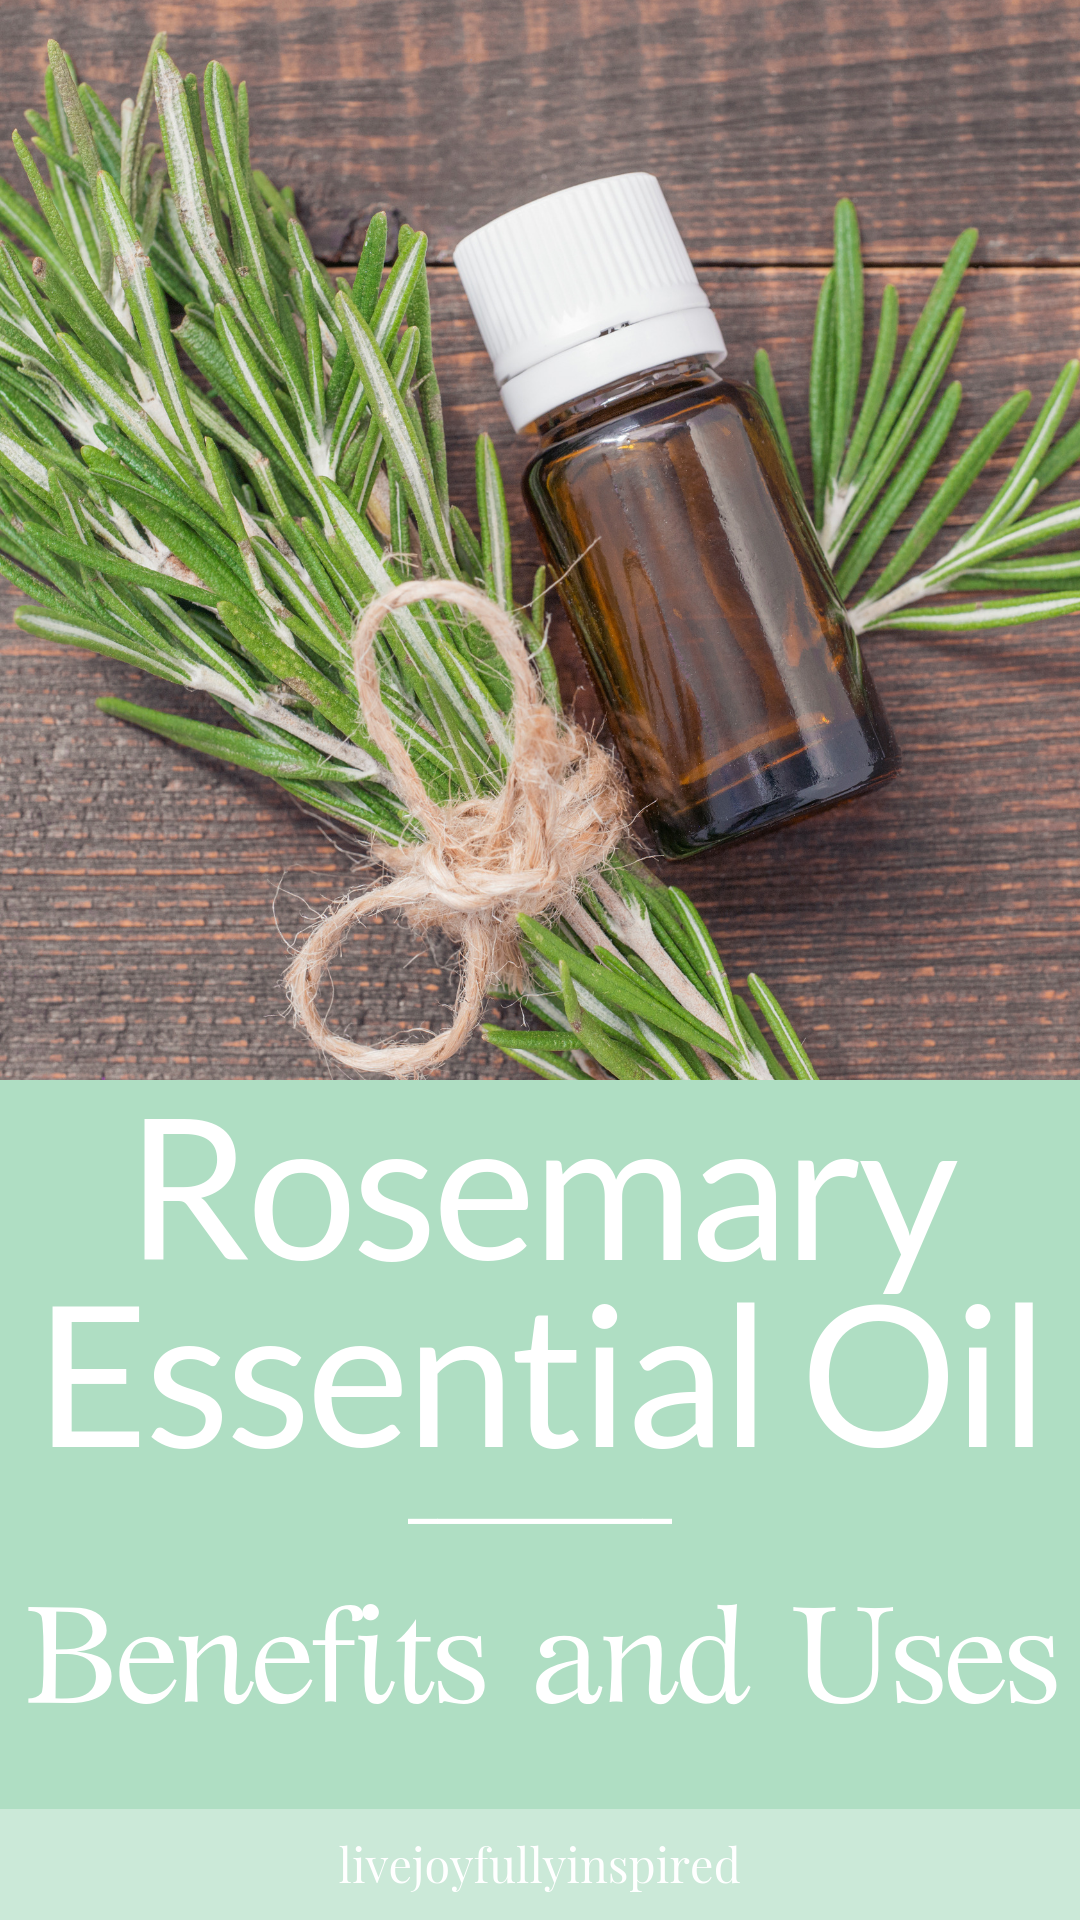 Rosemary Essential Oil. Rosemary is such a beautiful and aromatic herb. Used in cooking and as an essential oil, it's a remarkable plant. It's got a fresh, clean scent that's energizing, and uplifting bringing a smile to your face. #rosemary #essentialoil #uplift